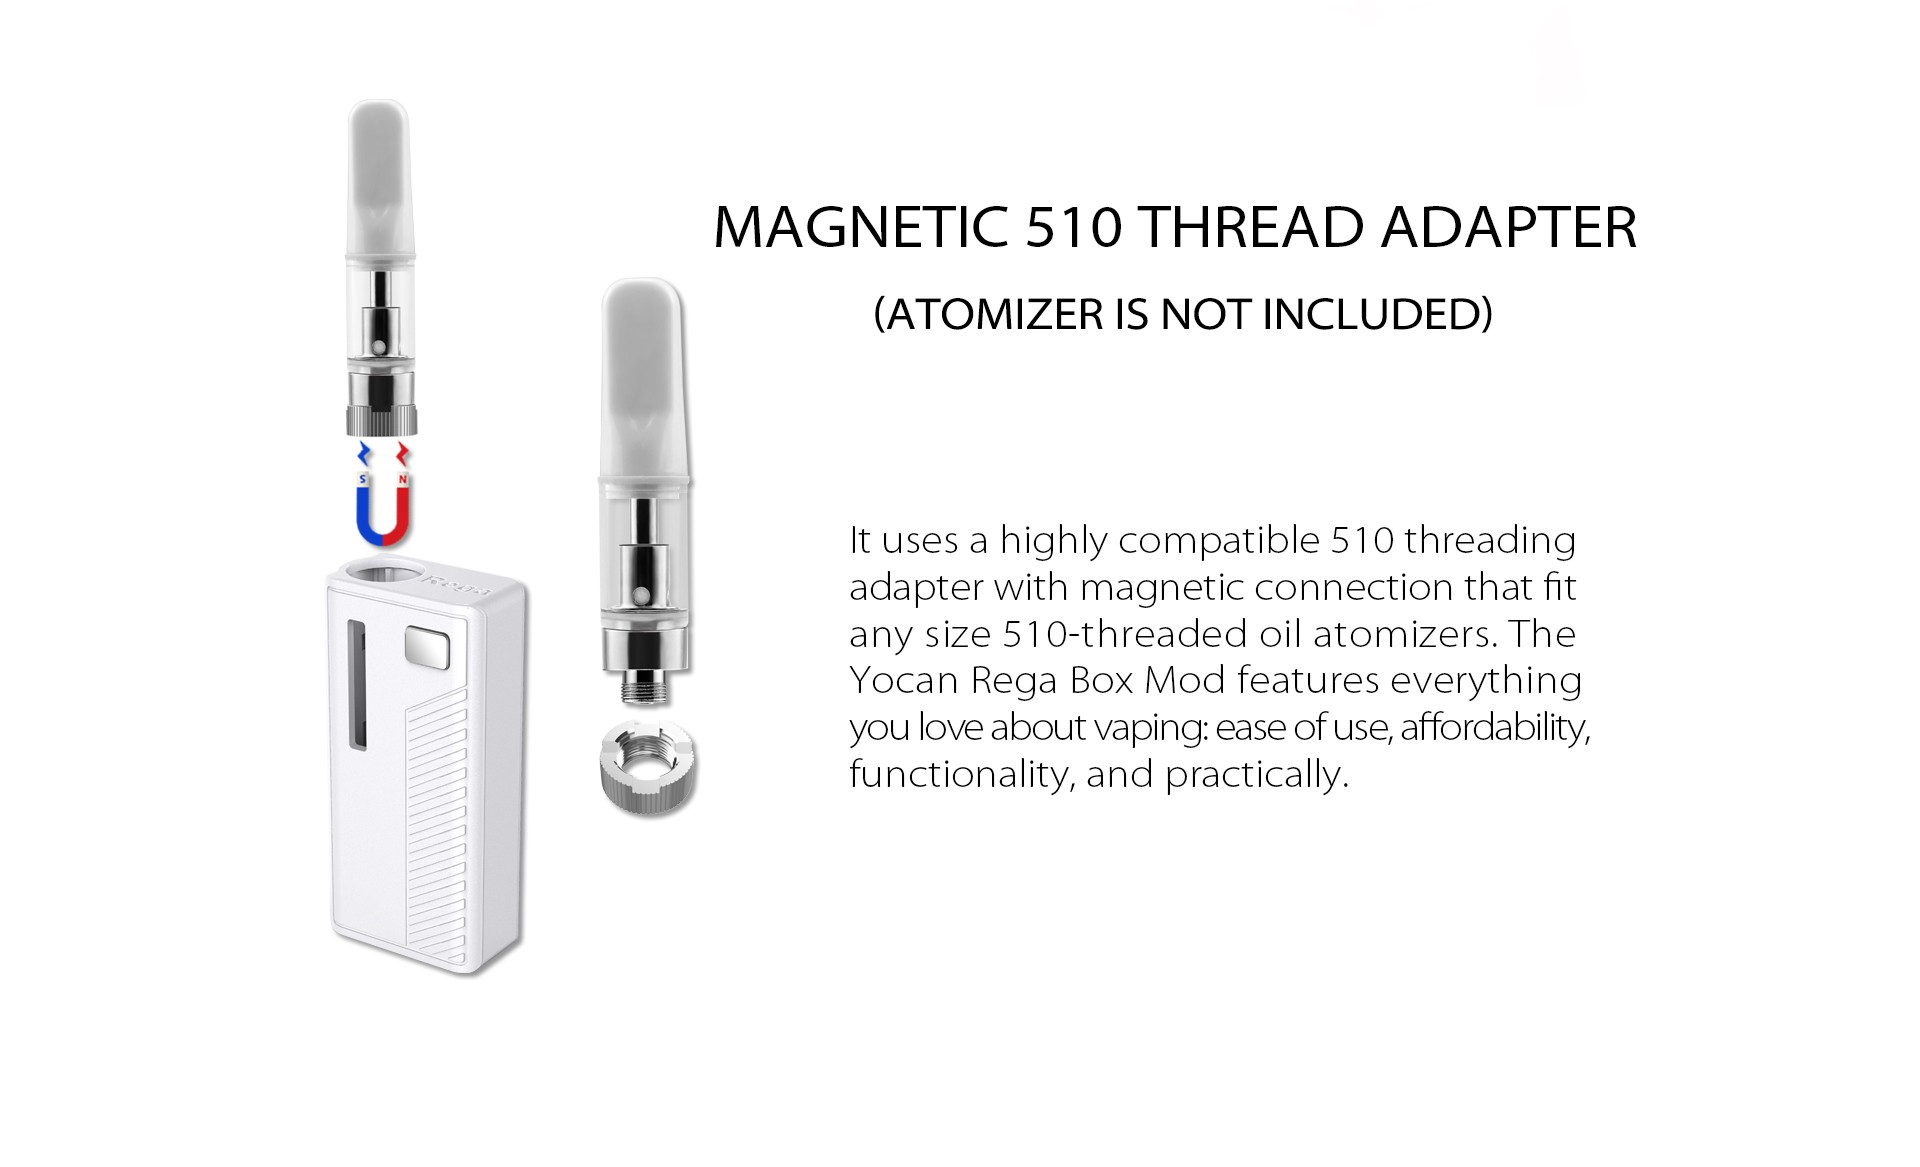 The Yocan Rega Box Mod Battery magnetic 510 thread adapter.